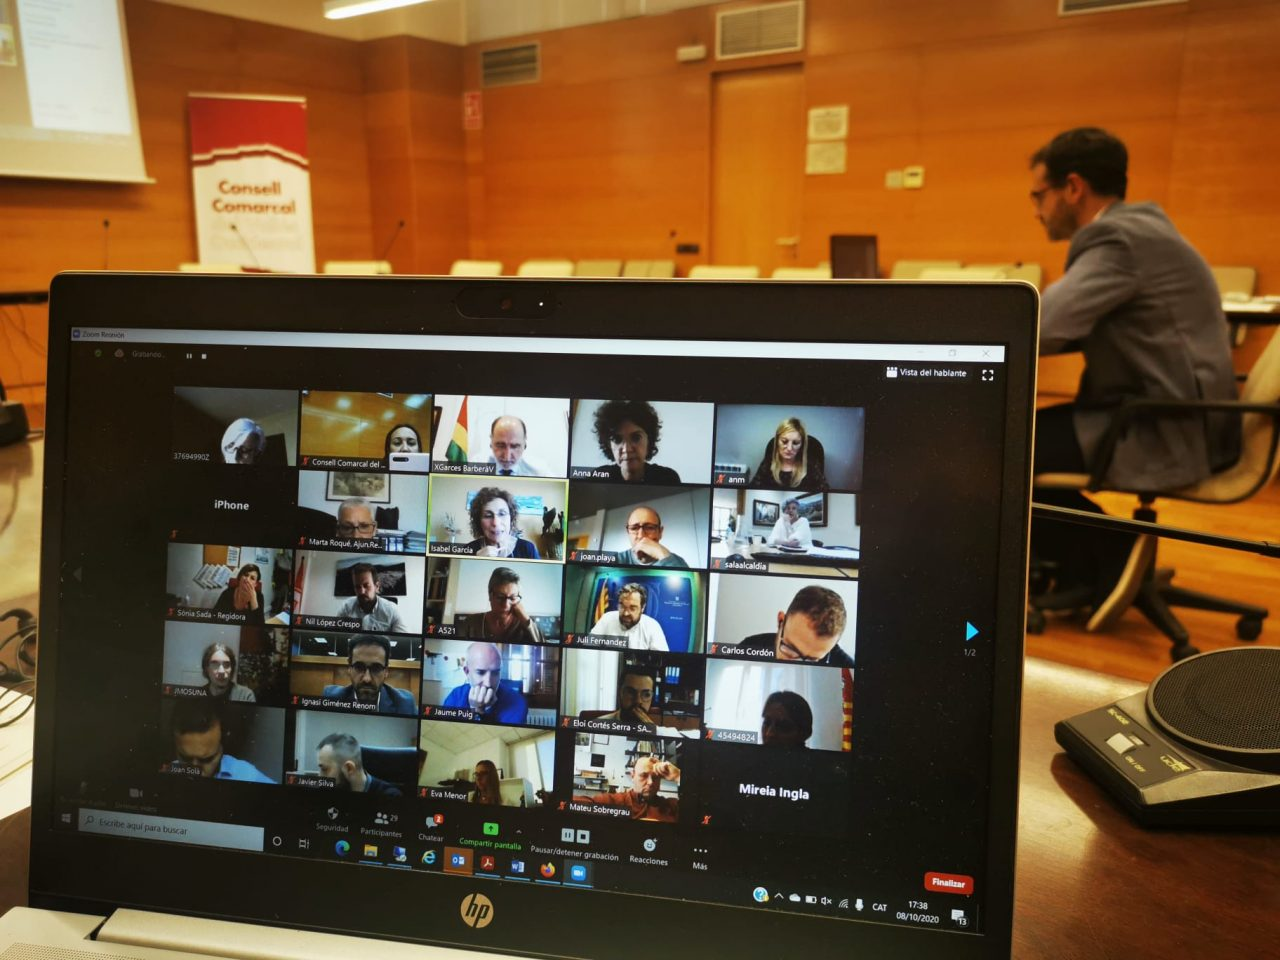 consell alcaldies 081020